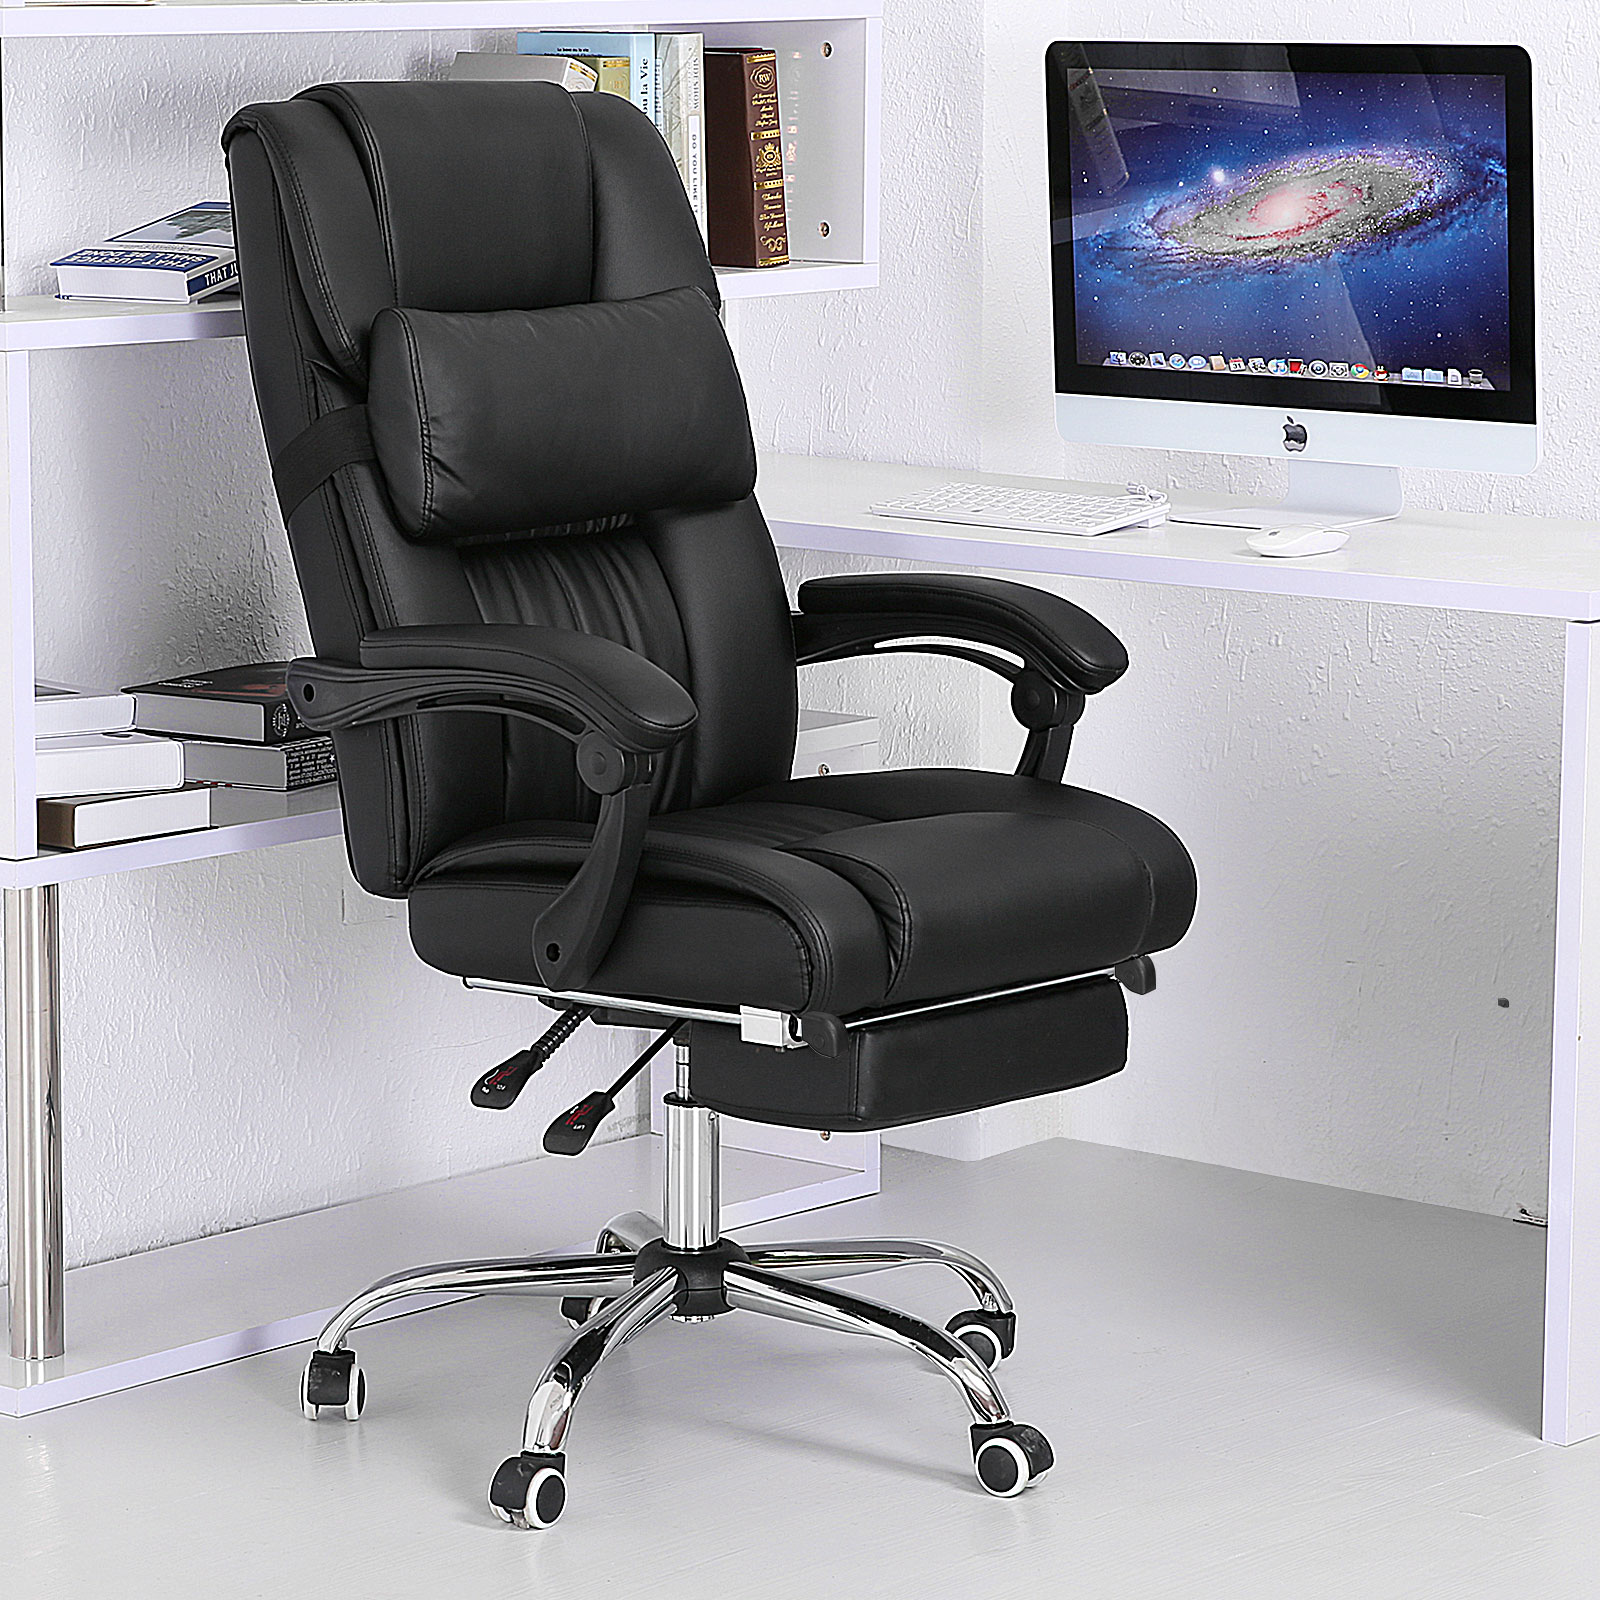 Executive Office Chair Reclining Racing High Back Computer